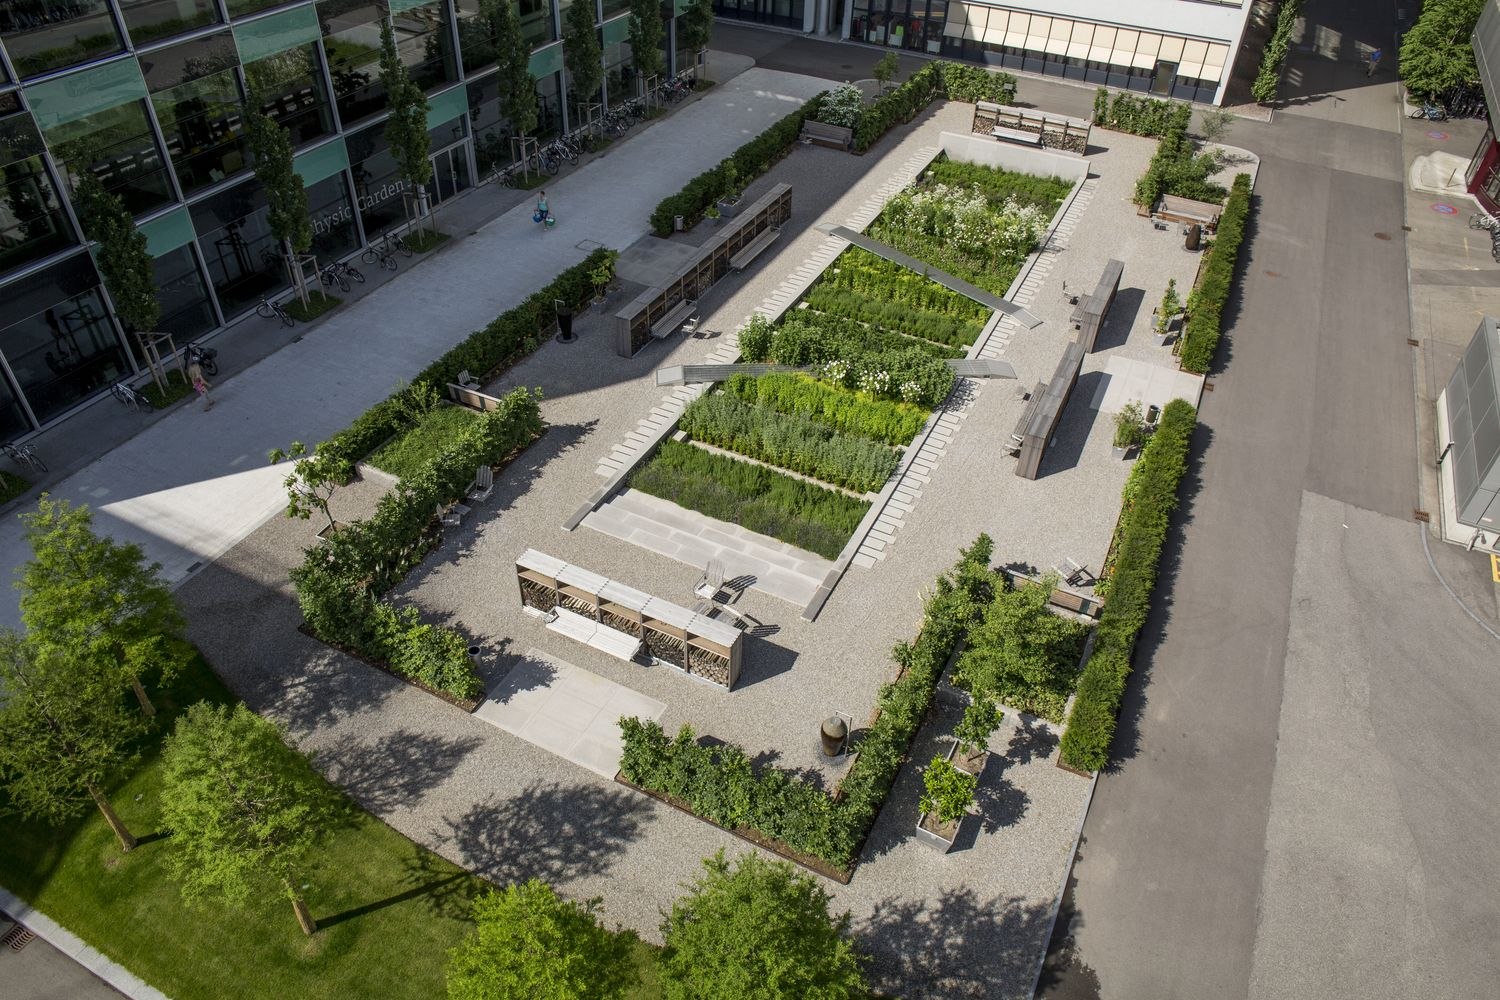 Physic garden wikipedia - Gallery Of Novartis Physic Garden Thorbj Rn Andersson Sweco Architects 6